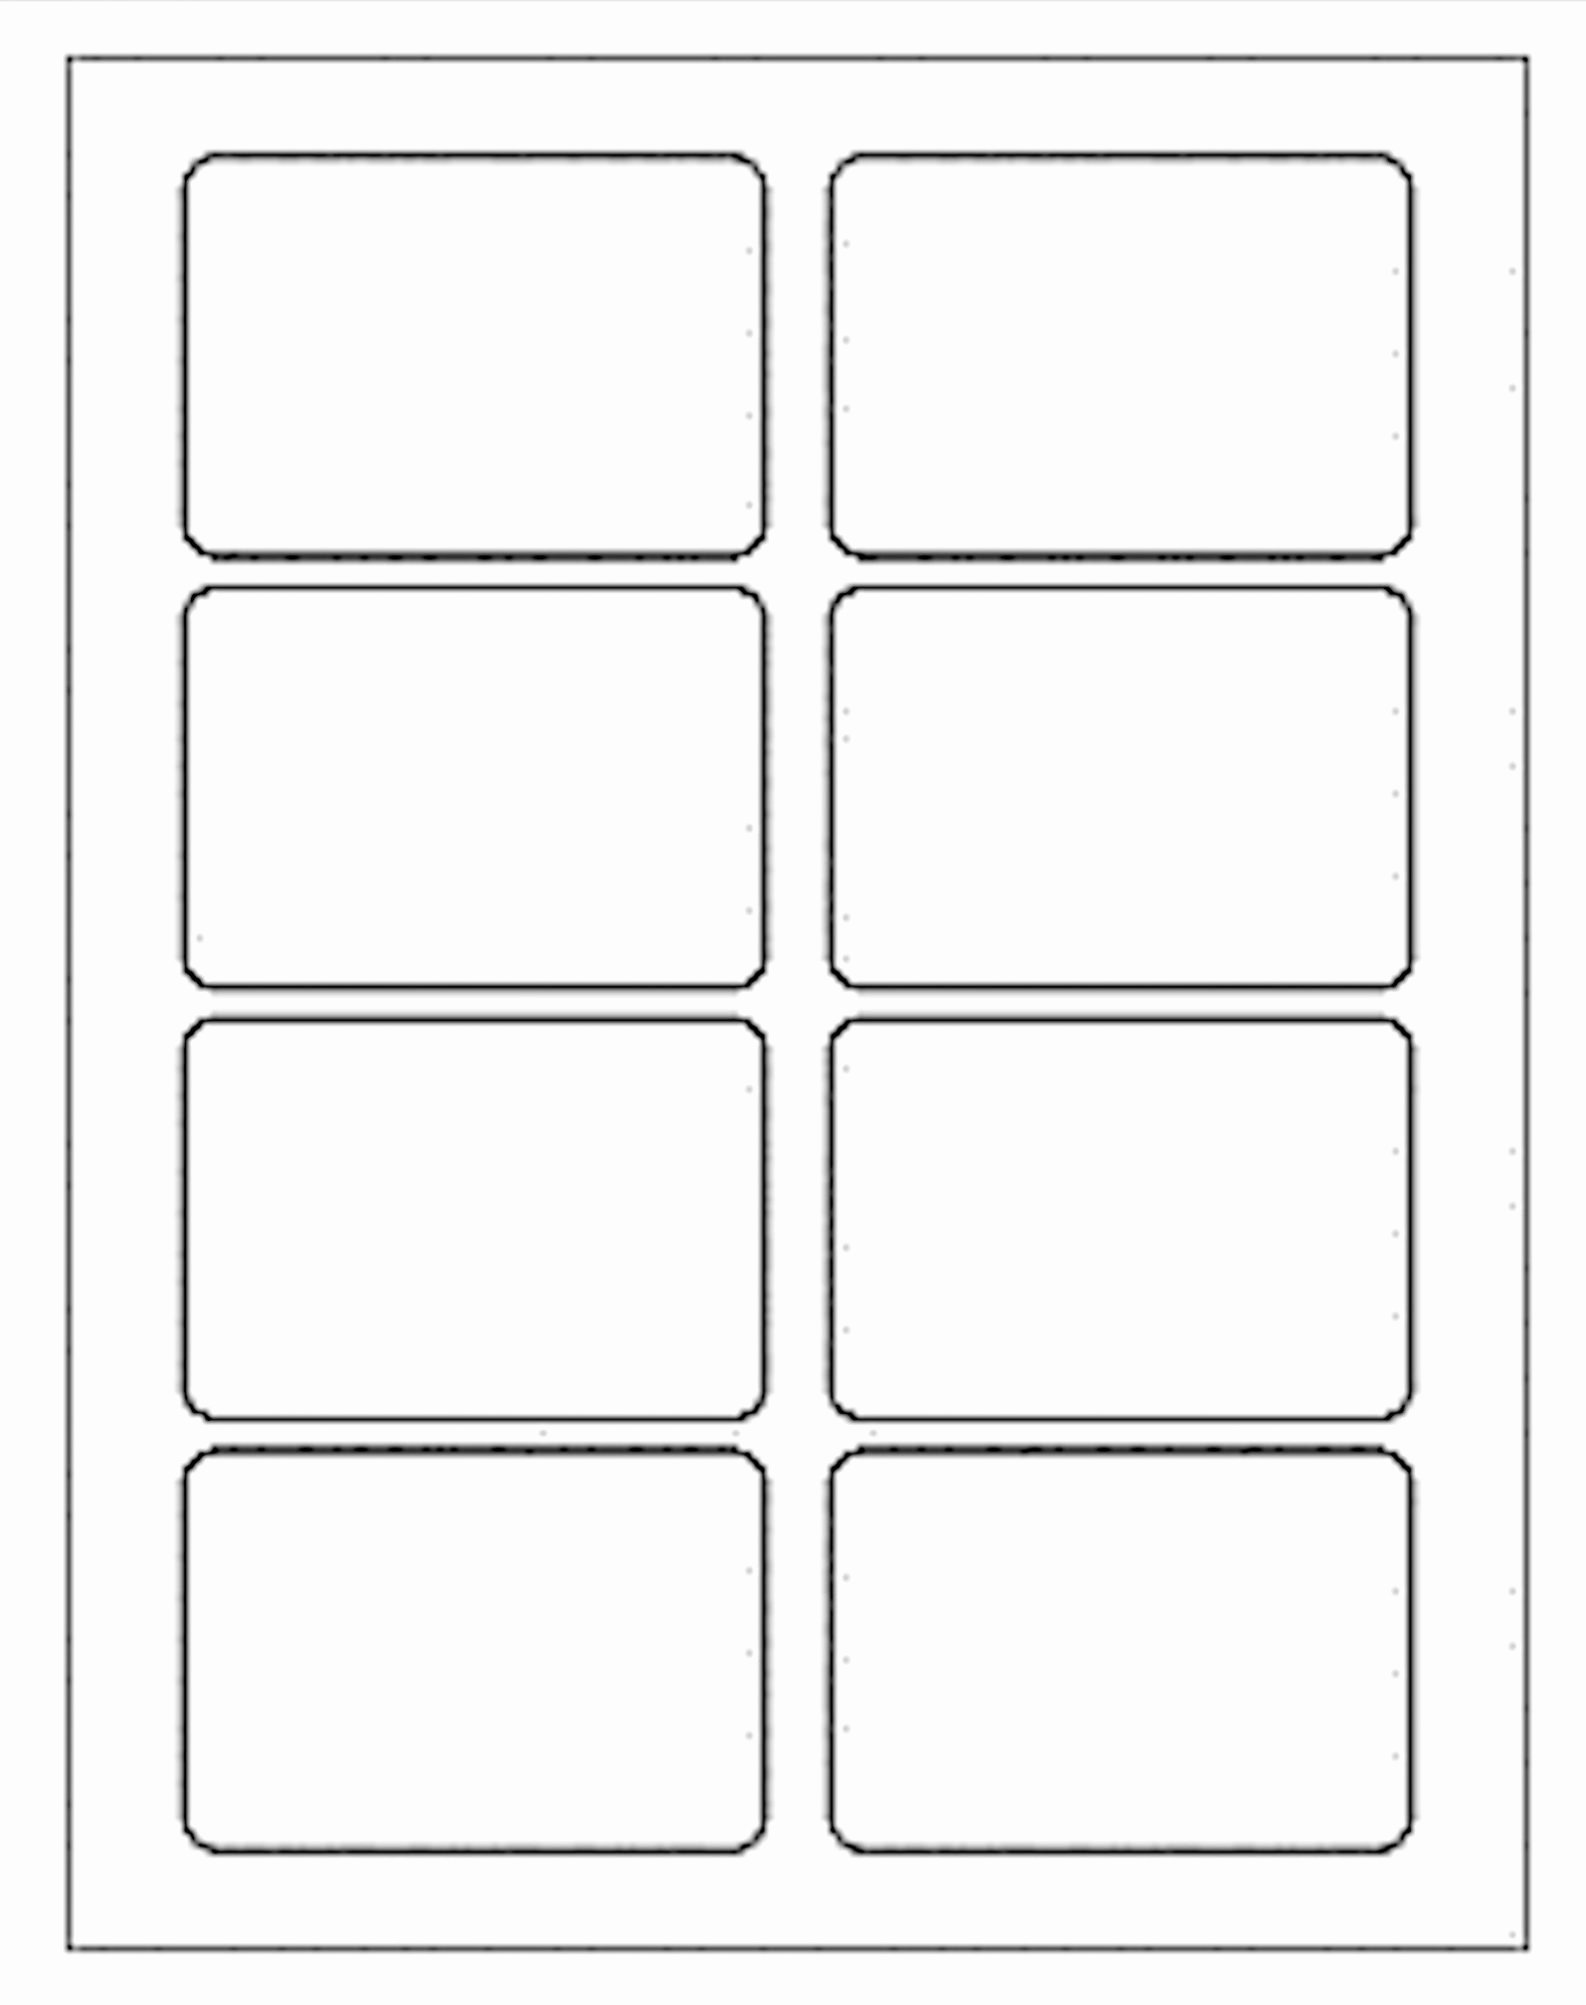 Name Tag Template Free Fresh Name Tag Template Free Printable Word